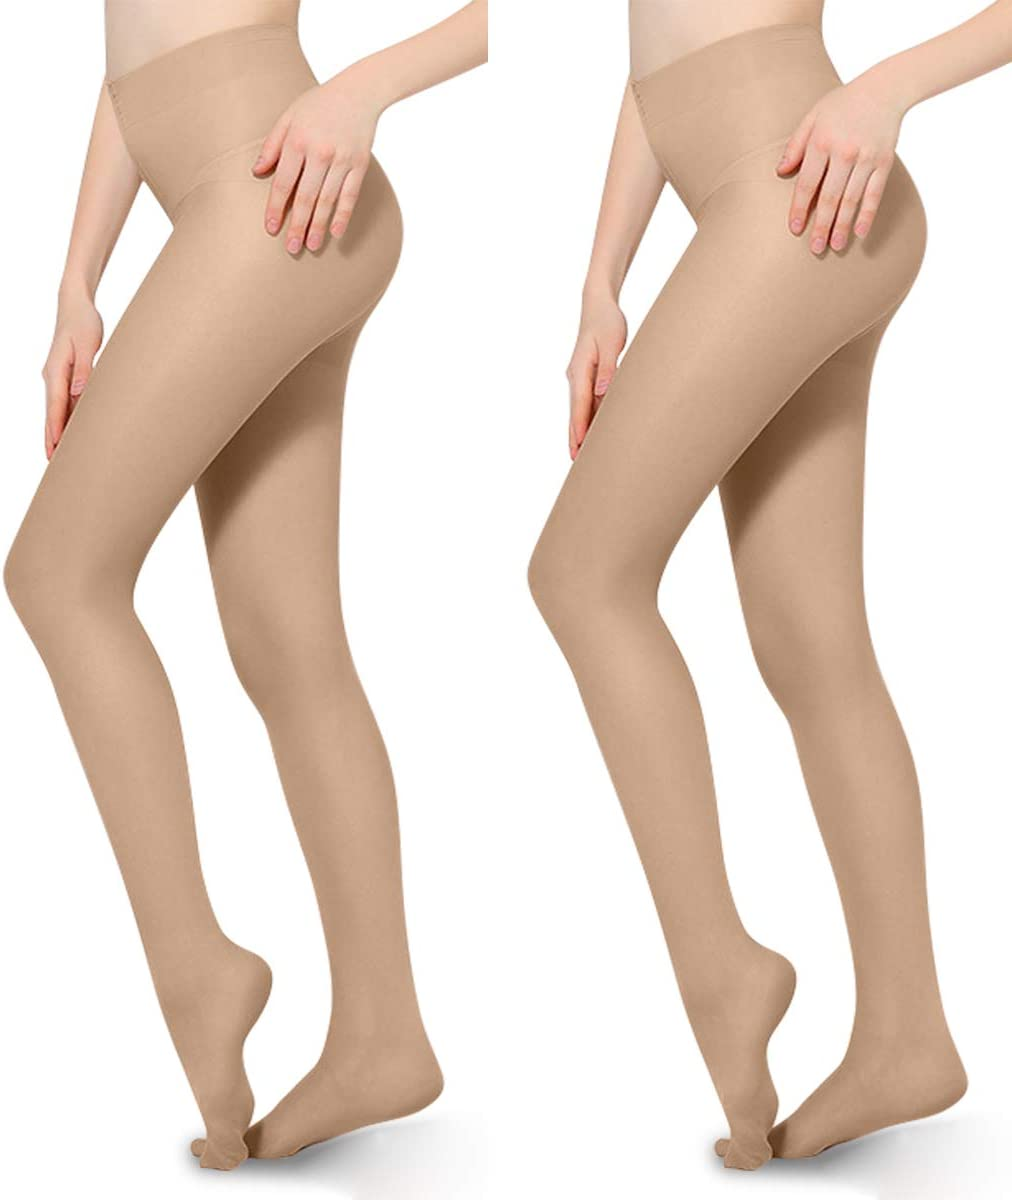 2 PCS 20-30mmHg Compression Pantyhose Opaque Support Pantyhose Closed Toe for Women Men Help Relieve Swelling Varicose Veins Edema Beige M